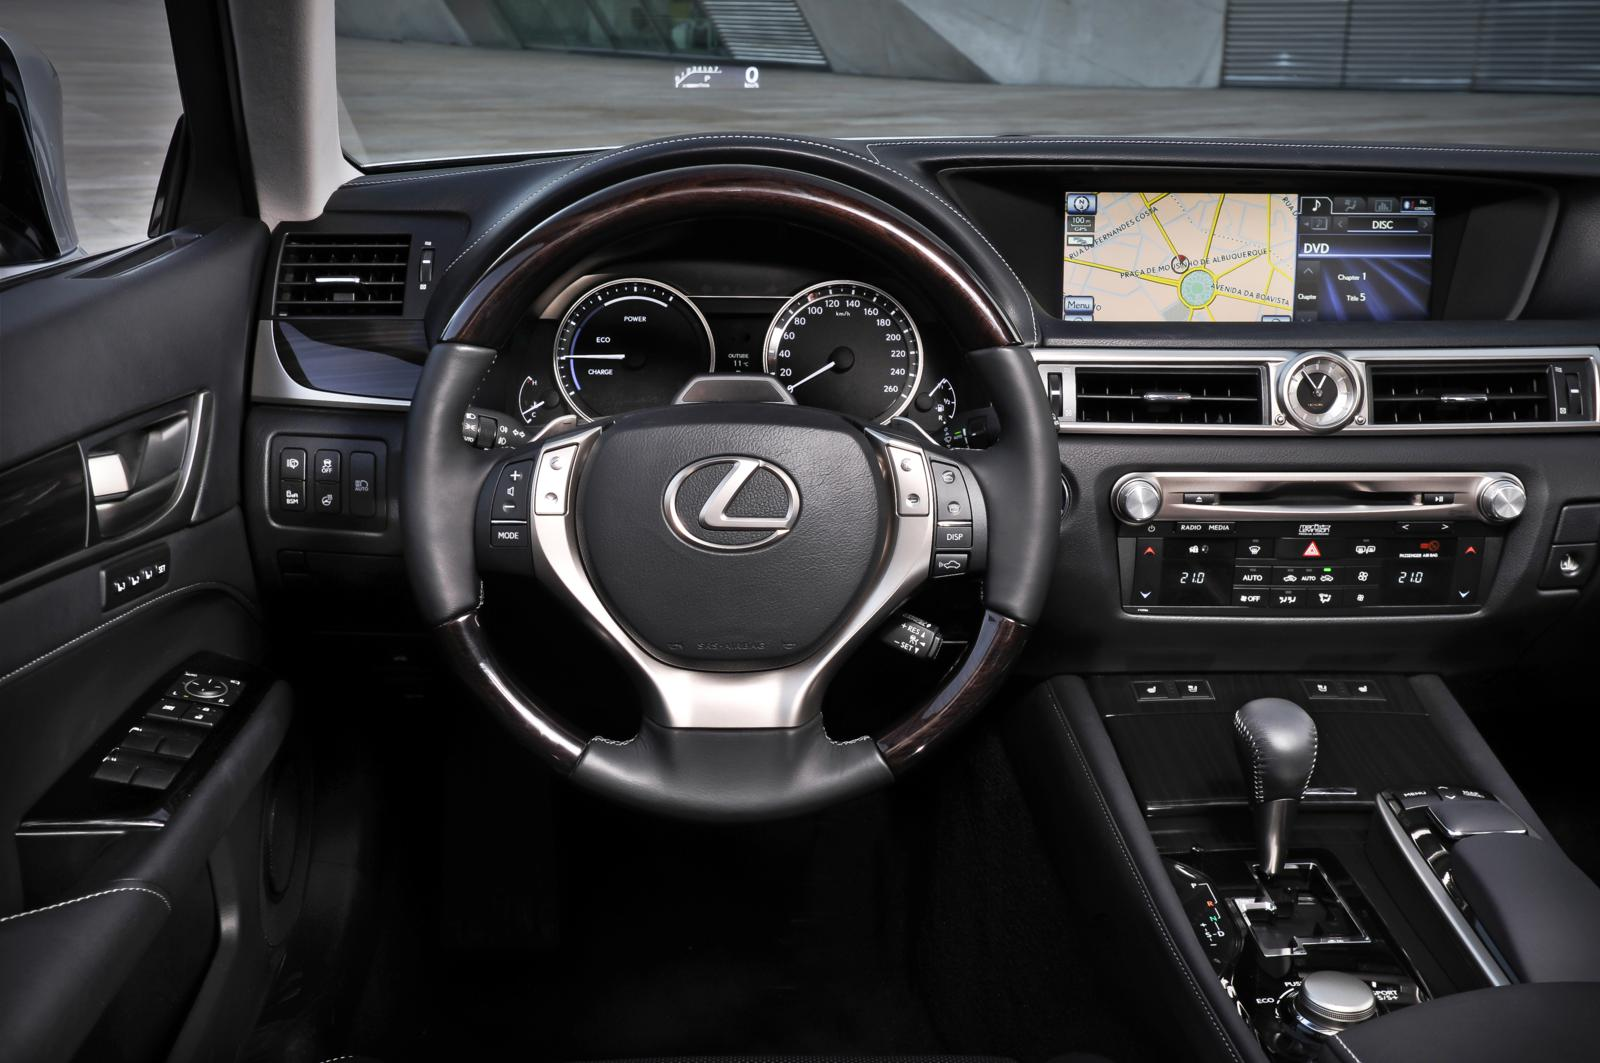 Lexus Gs 450h 2012 Dashboard Front Seat Driver